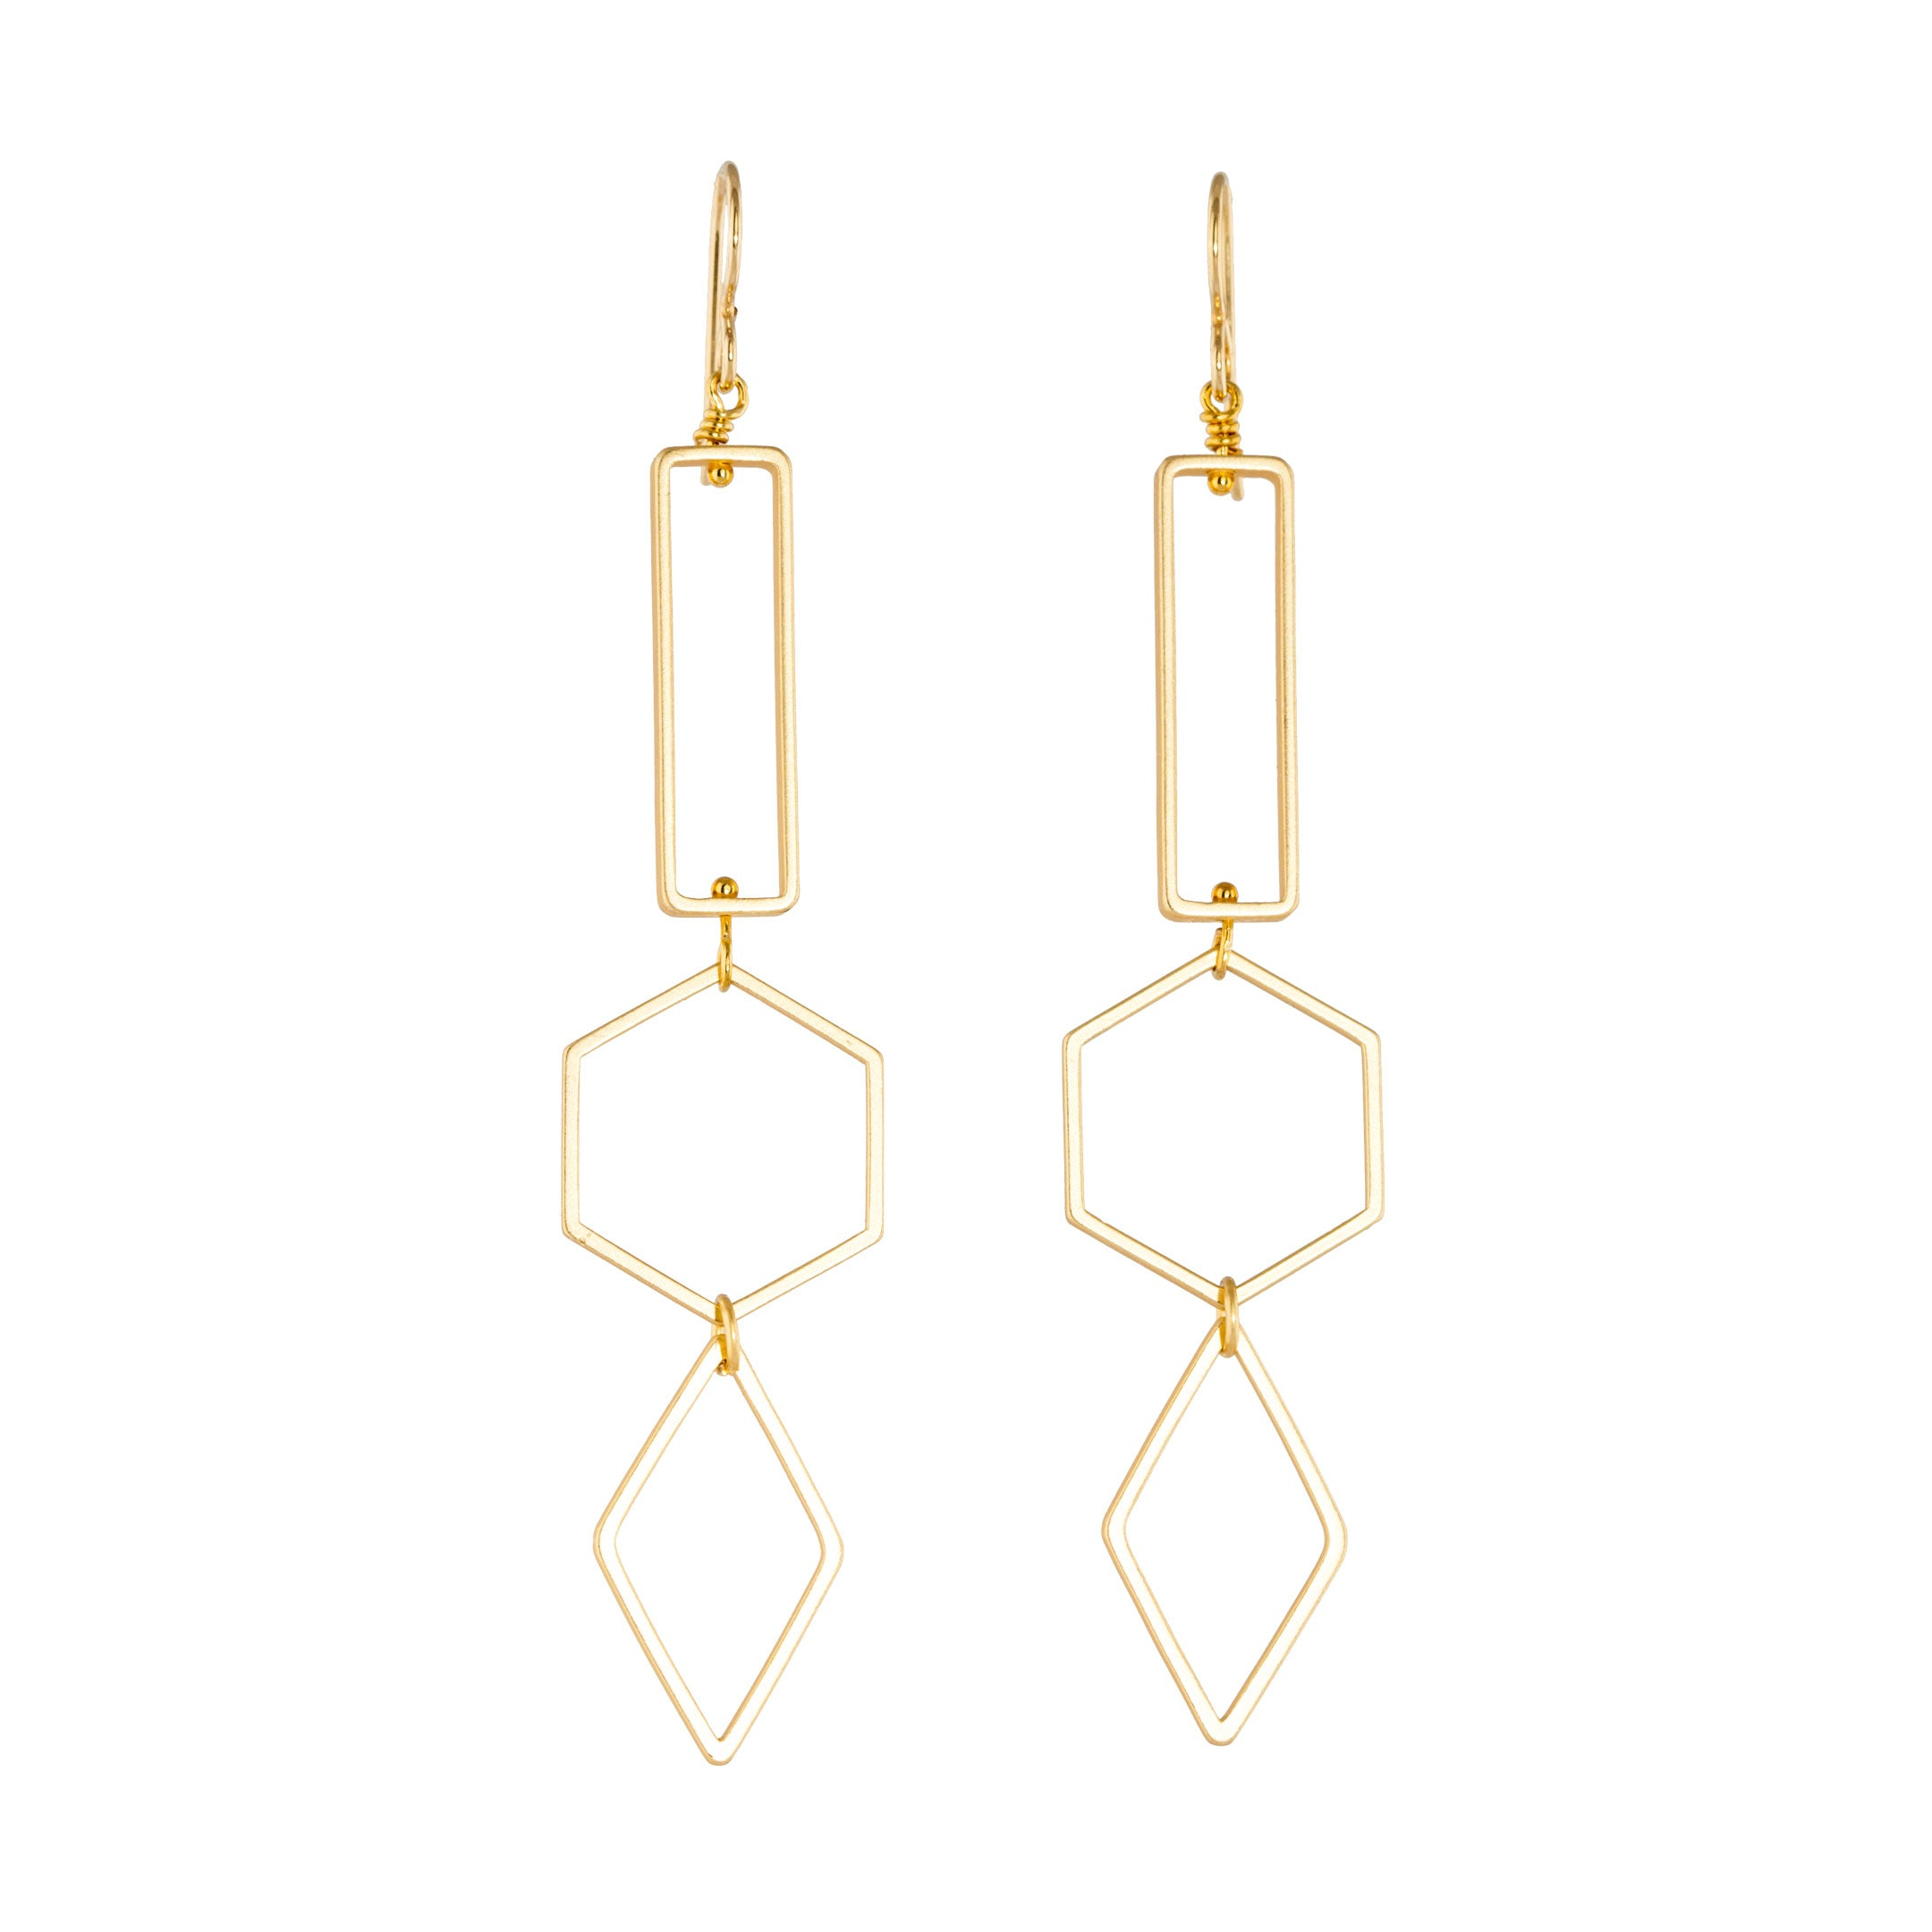 jewellery geometric earrings mango united kingdom gb women pl woman